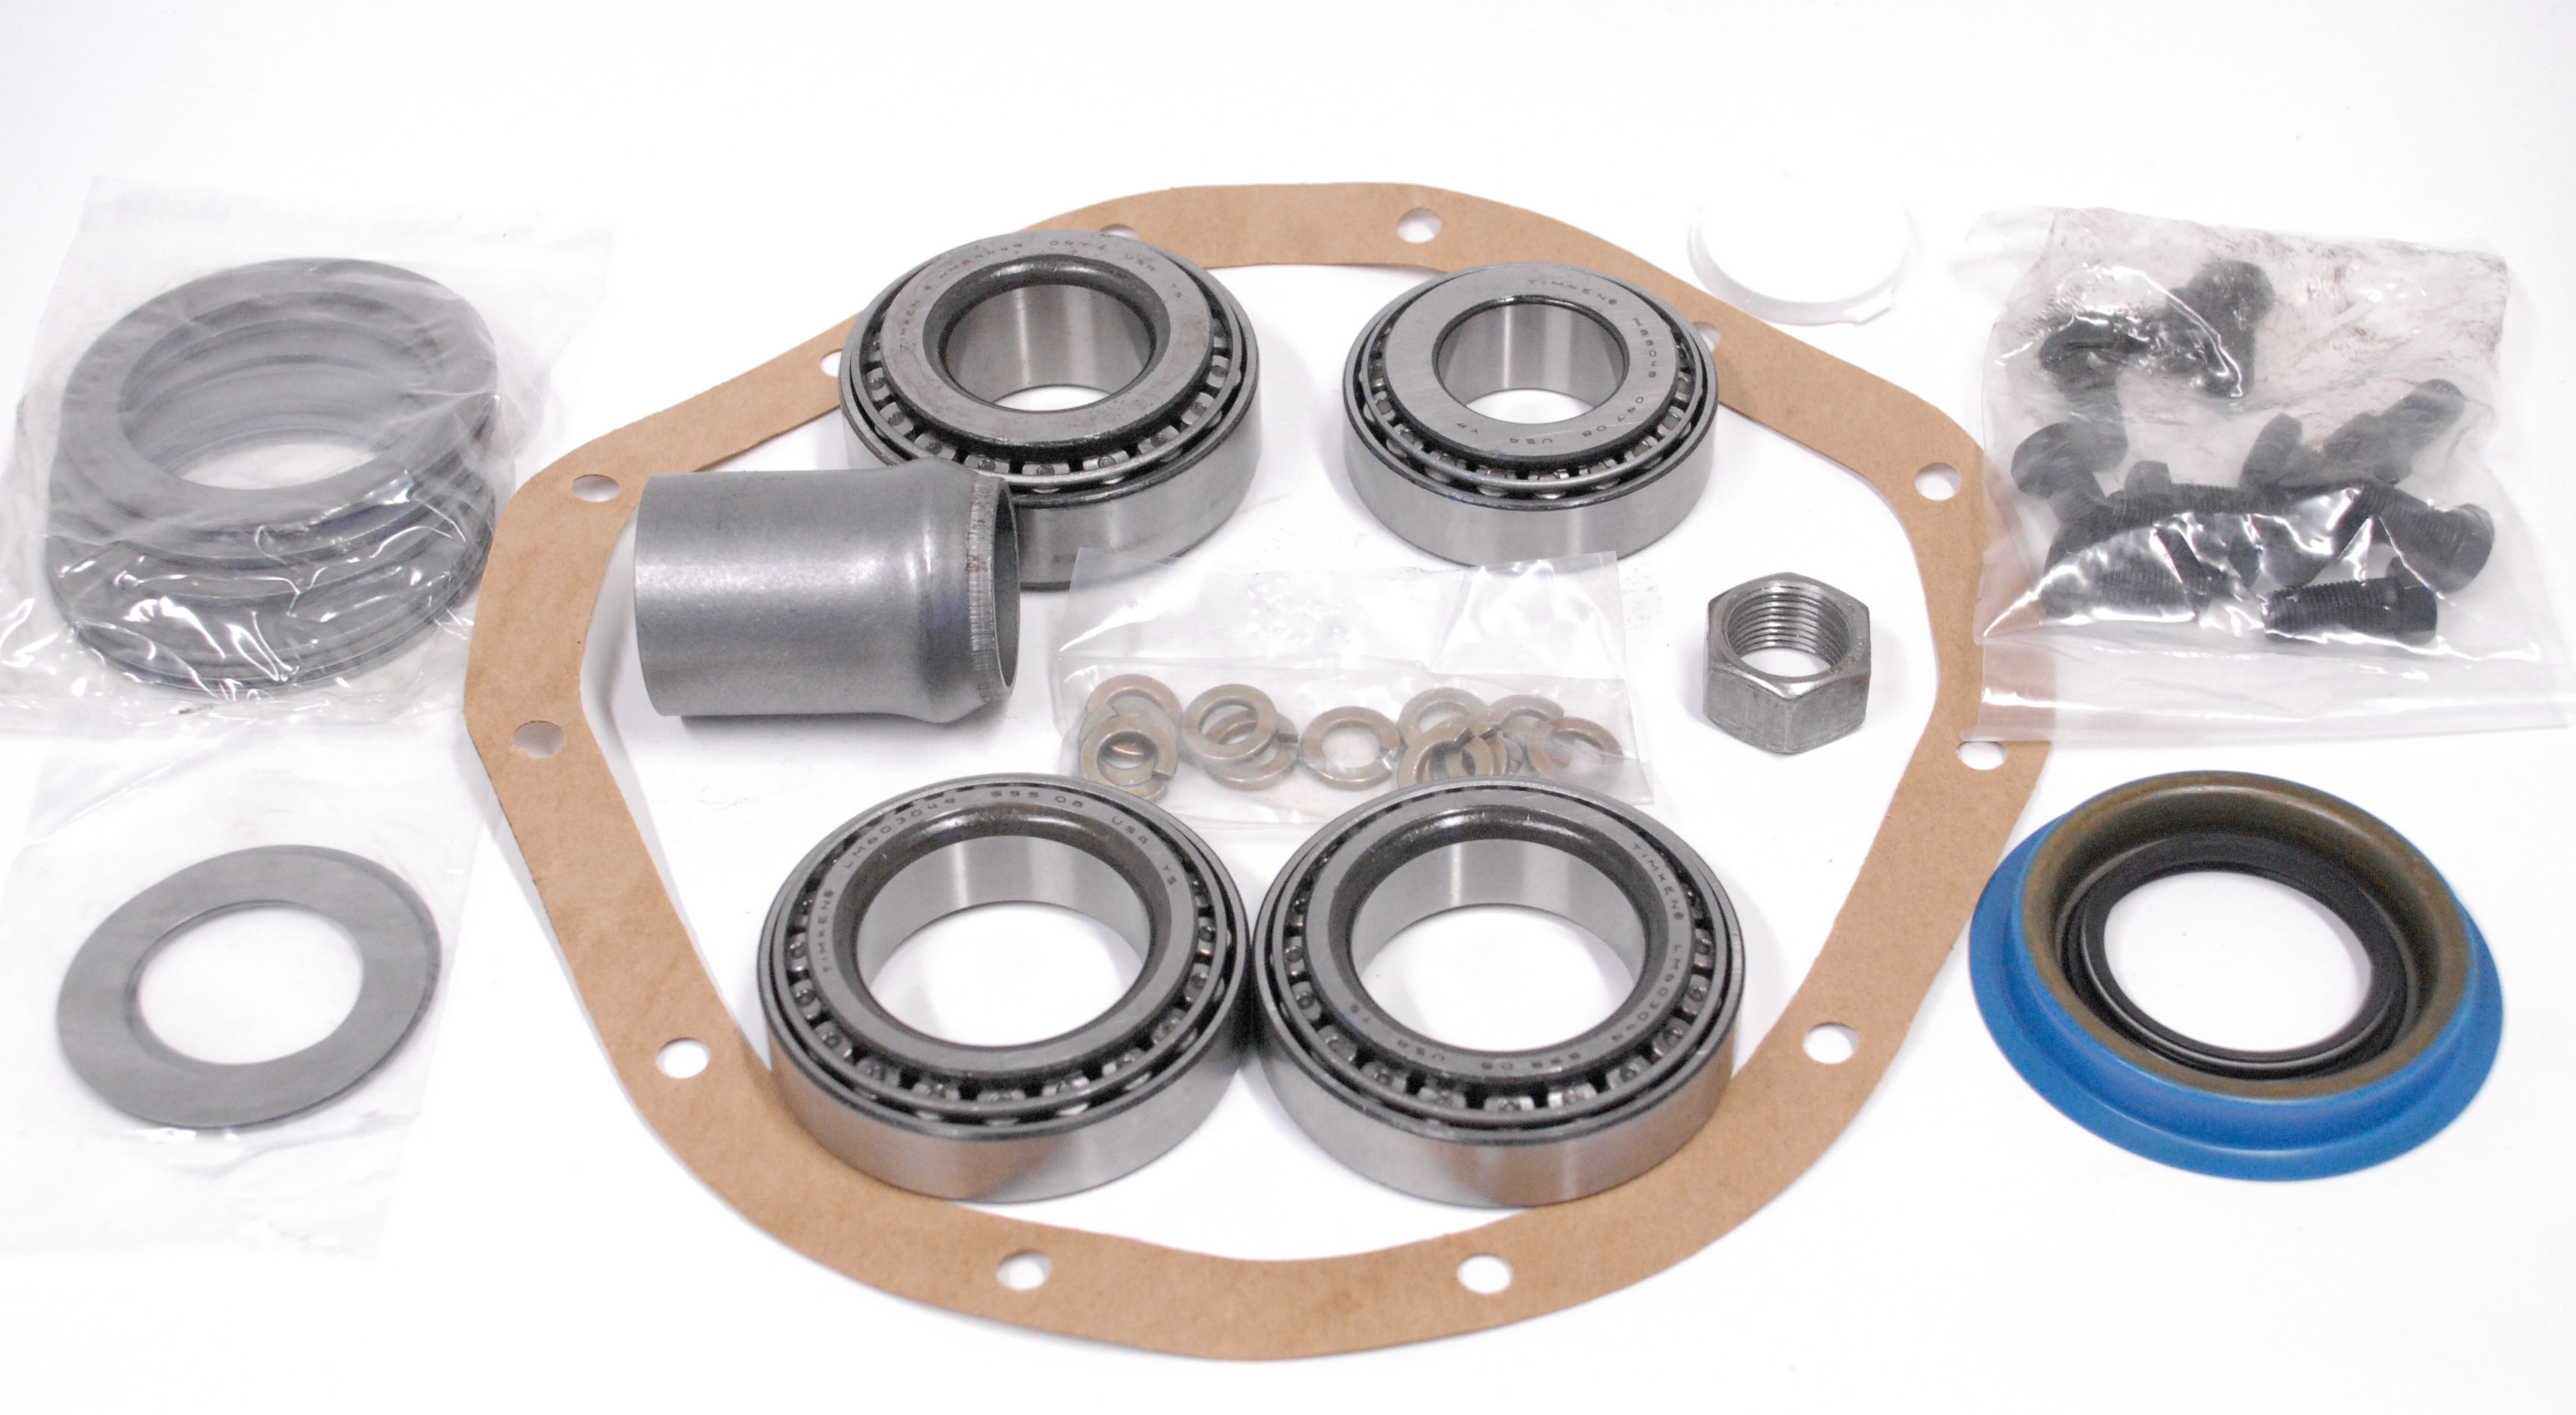 R12BT - 12 Bolt Chevy Truck Setup Kit